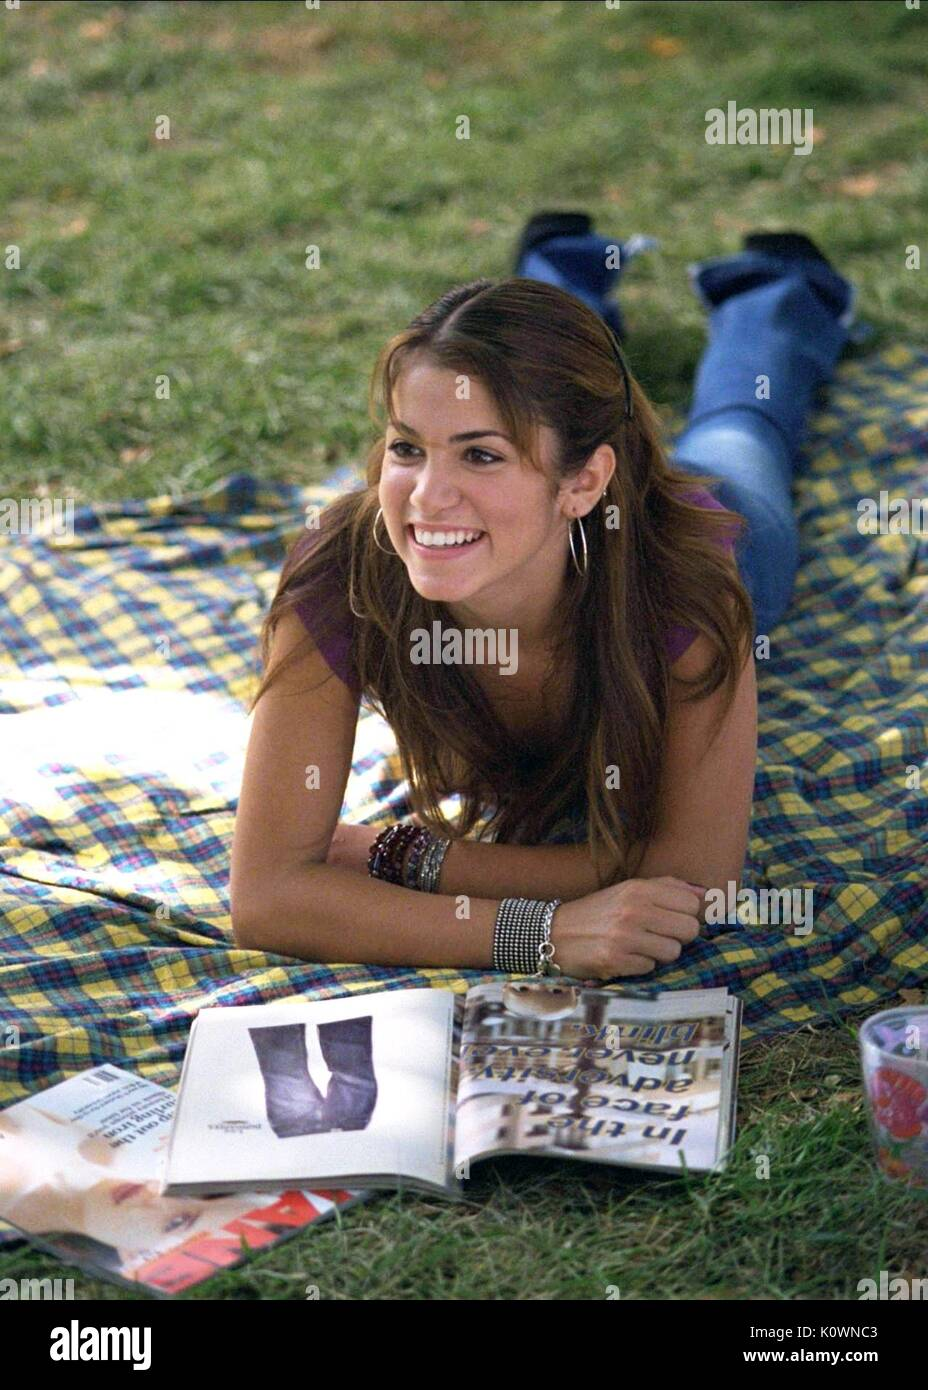 NIKKI REED THIRTEEN (2003) - Stock Image